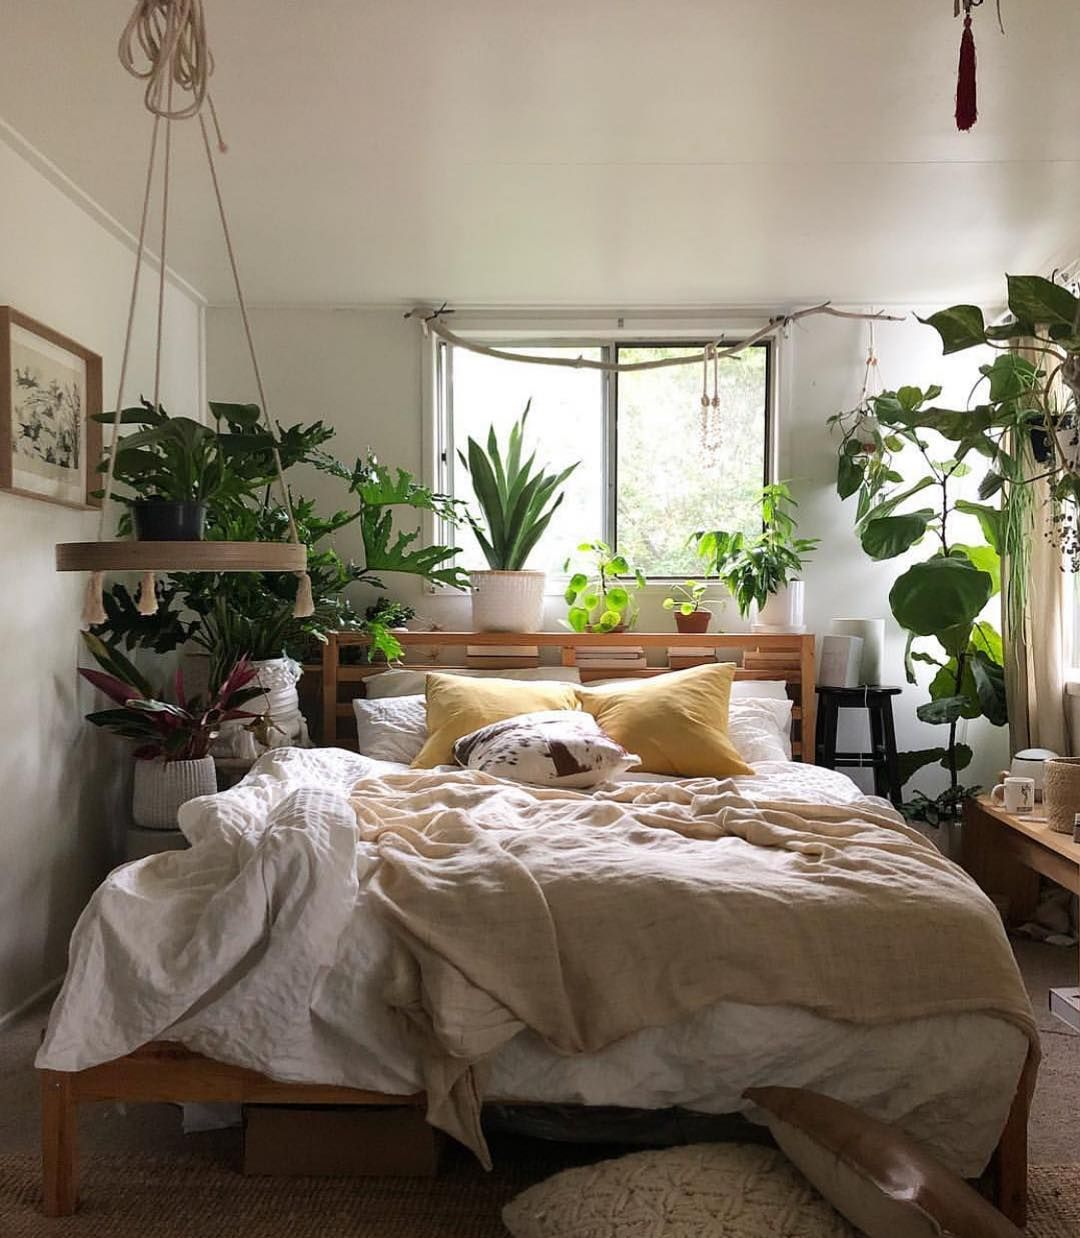 The Sill On Instagram Imperfectly Perfect Sunday Dear Plants Aesthetic Room Decor Aesthetic Bedroom Room Decor Bedroom